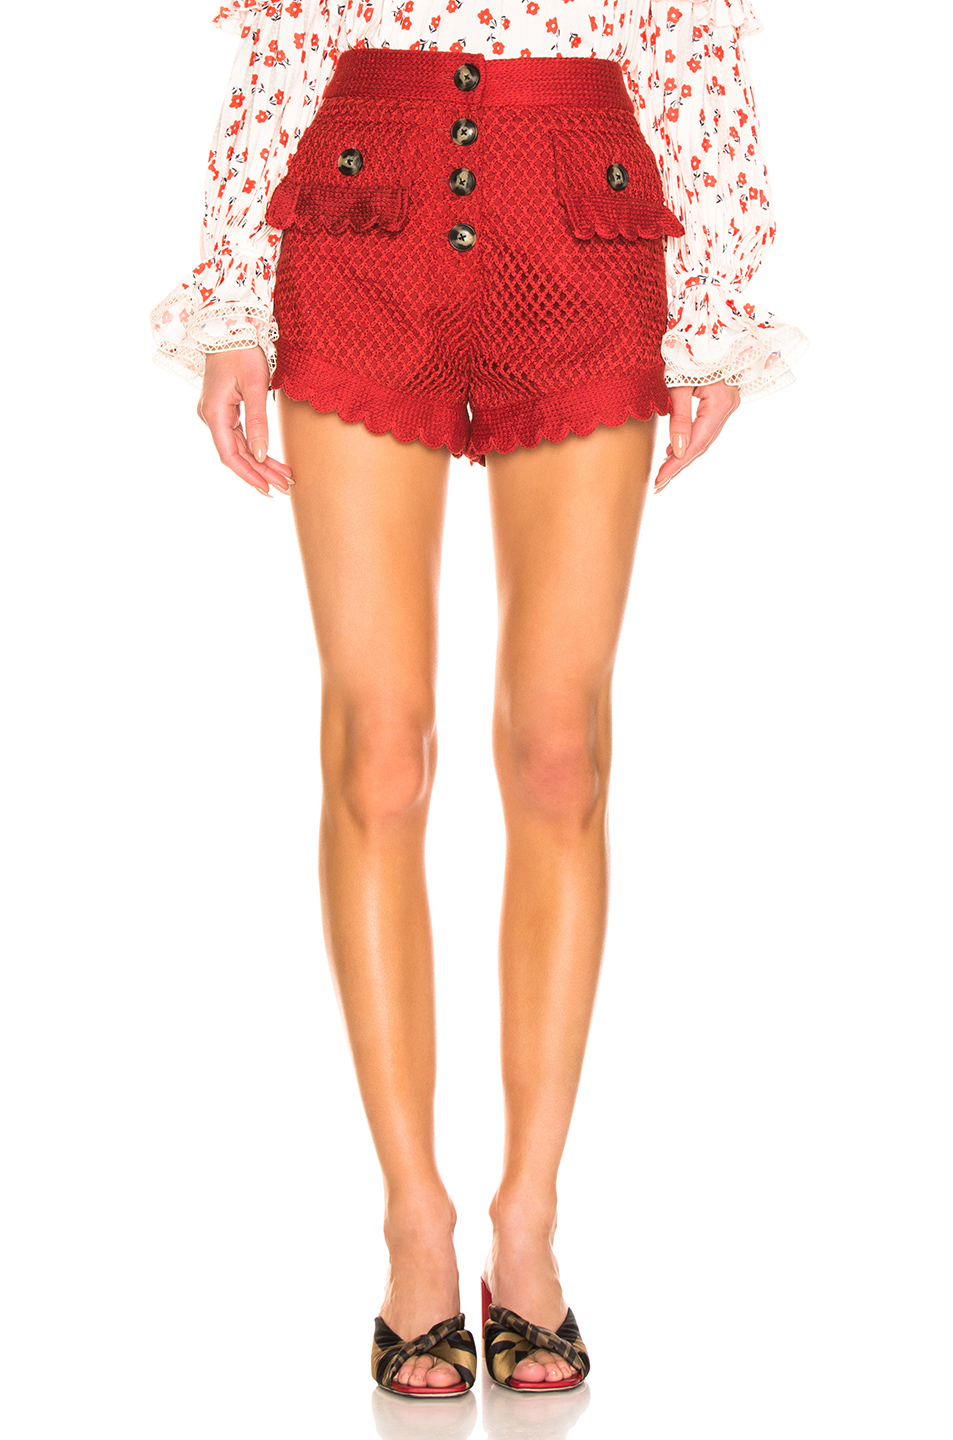 Jual Self Portrait Crochet Lace Shorts 100 Original Bobobobo